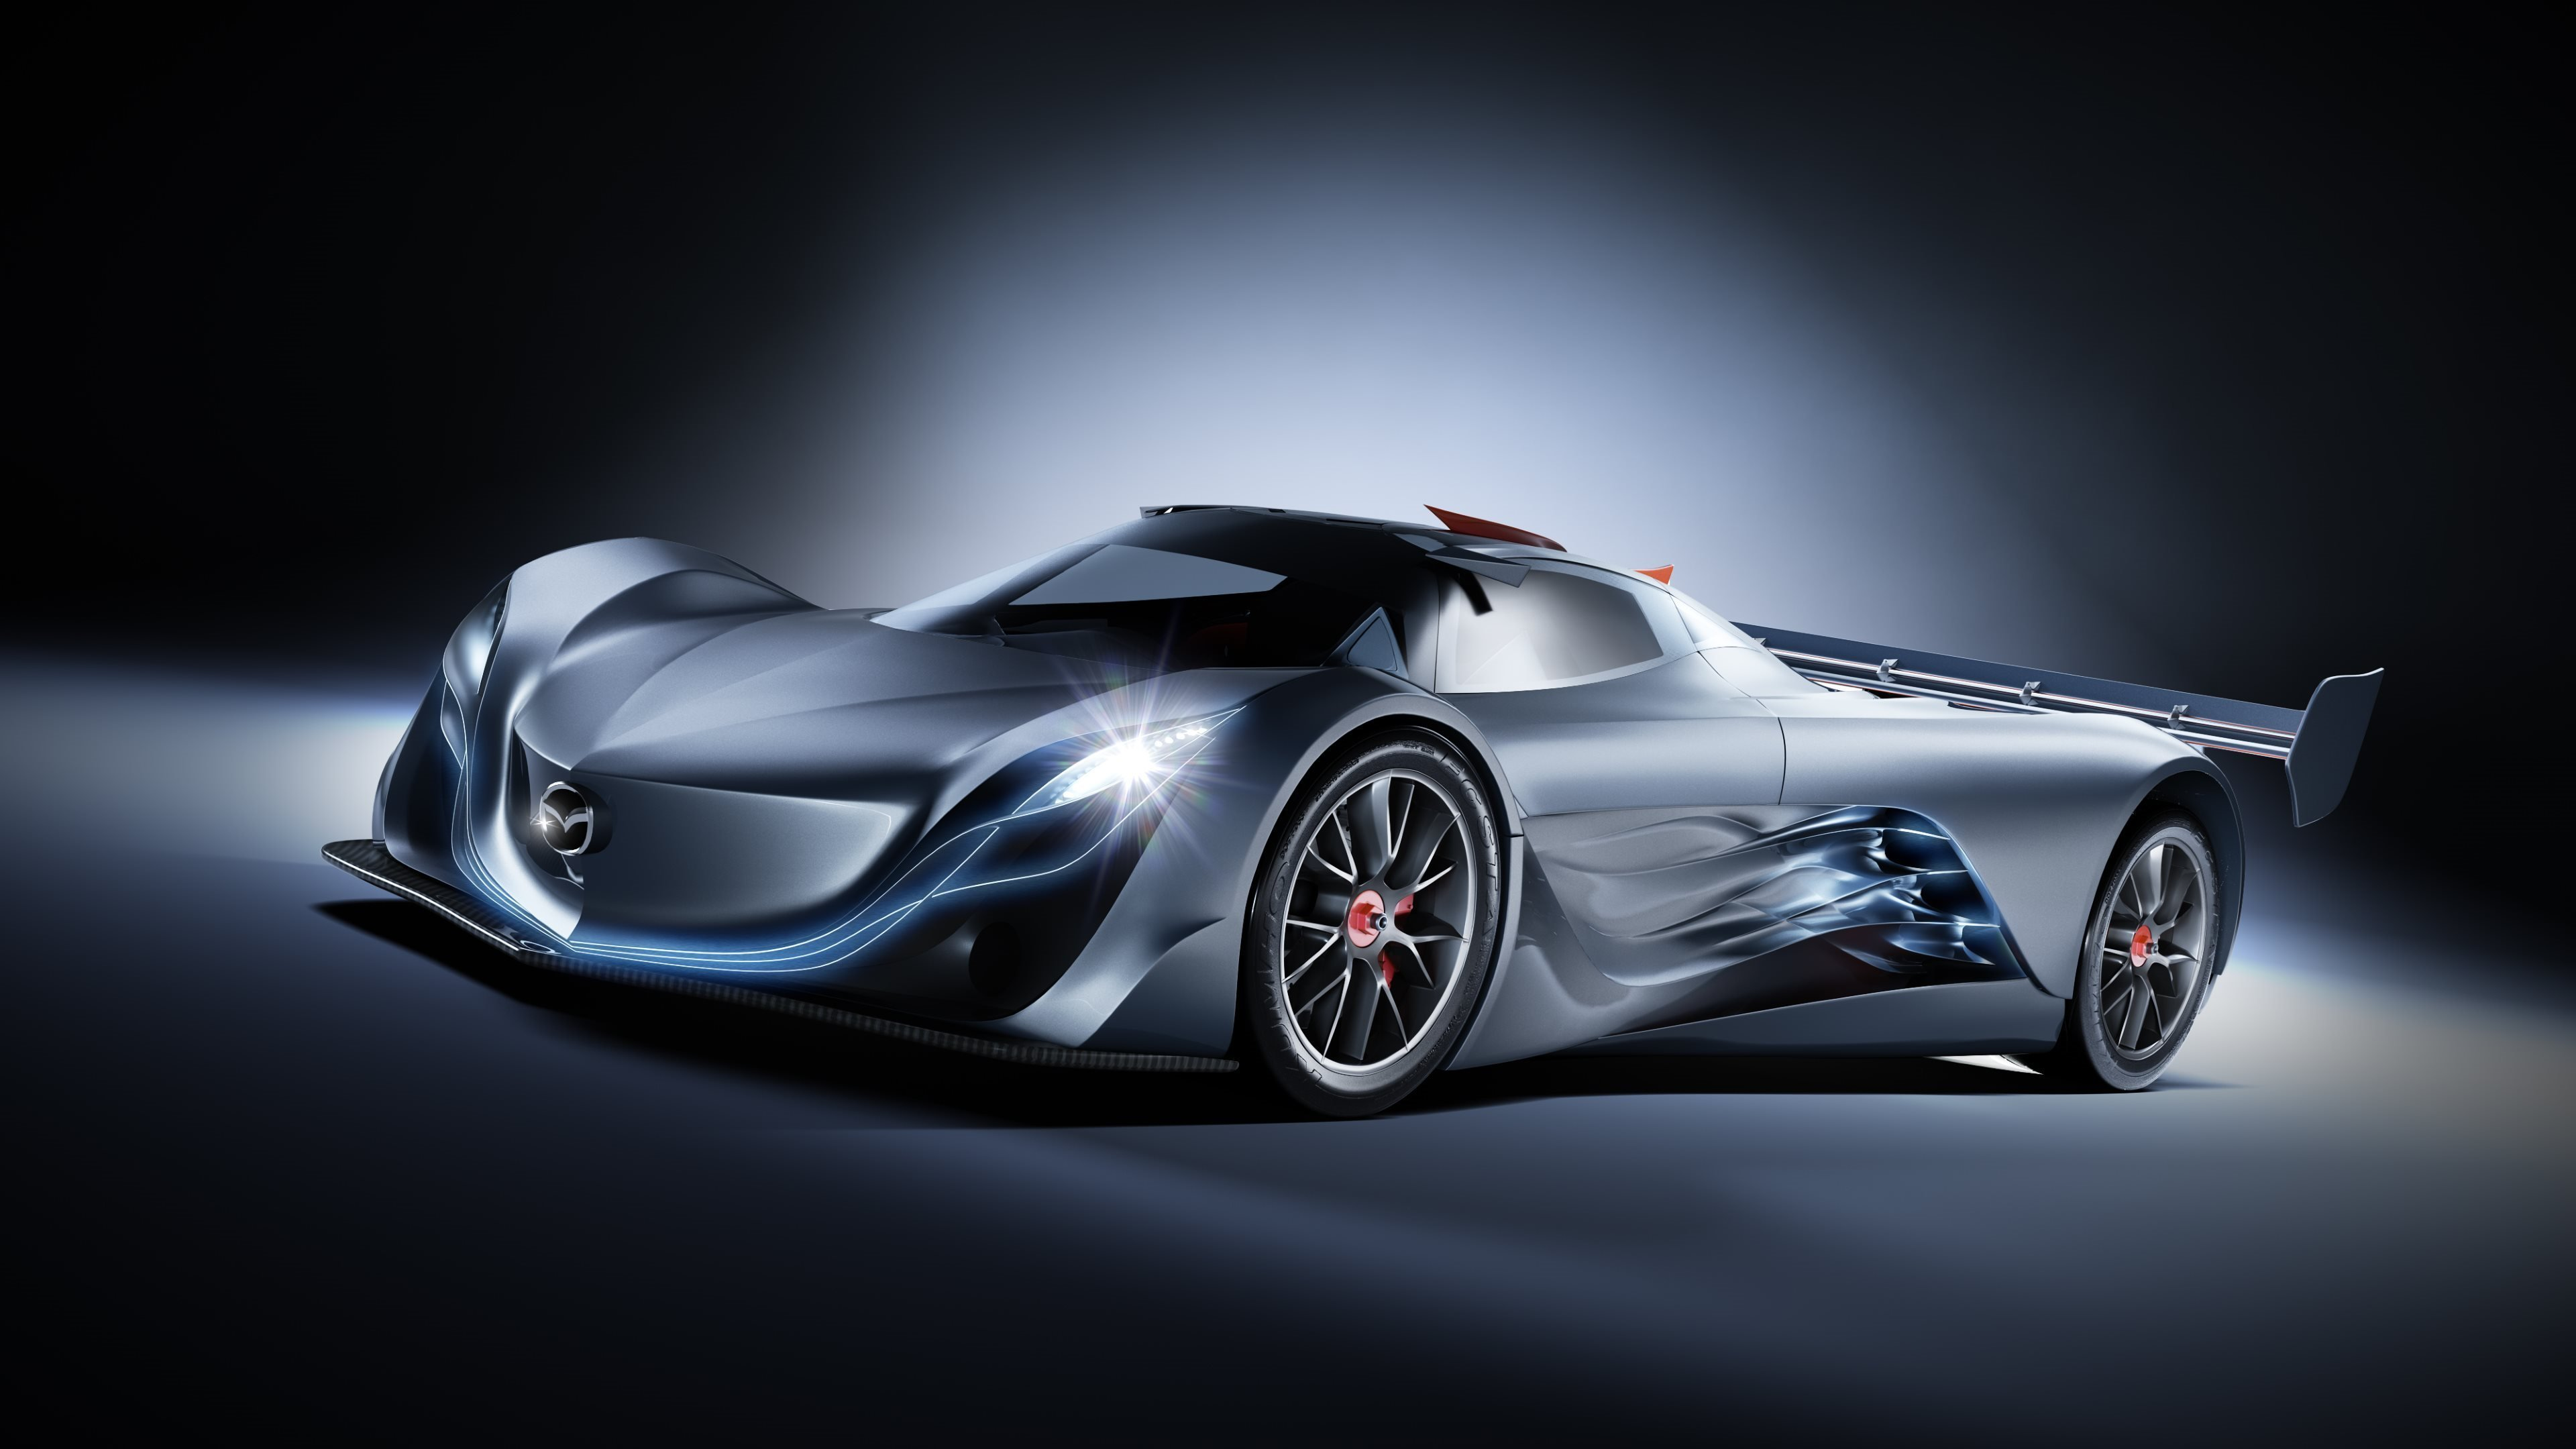 Latest 10 Mazda Furai Hd Wallpapers Backgrounds Wallpaper Abyss Free Download